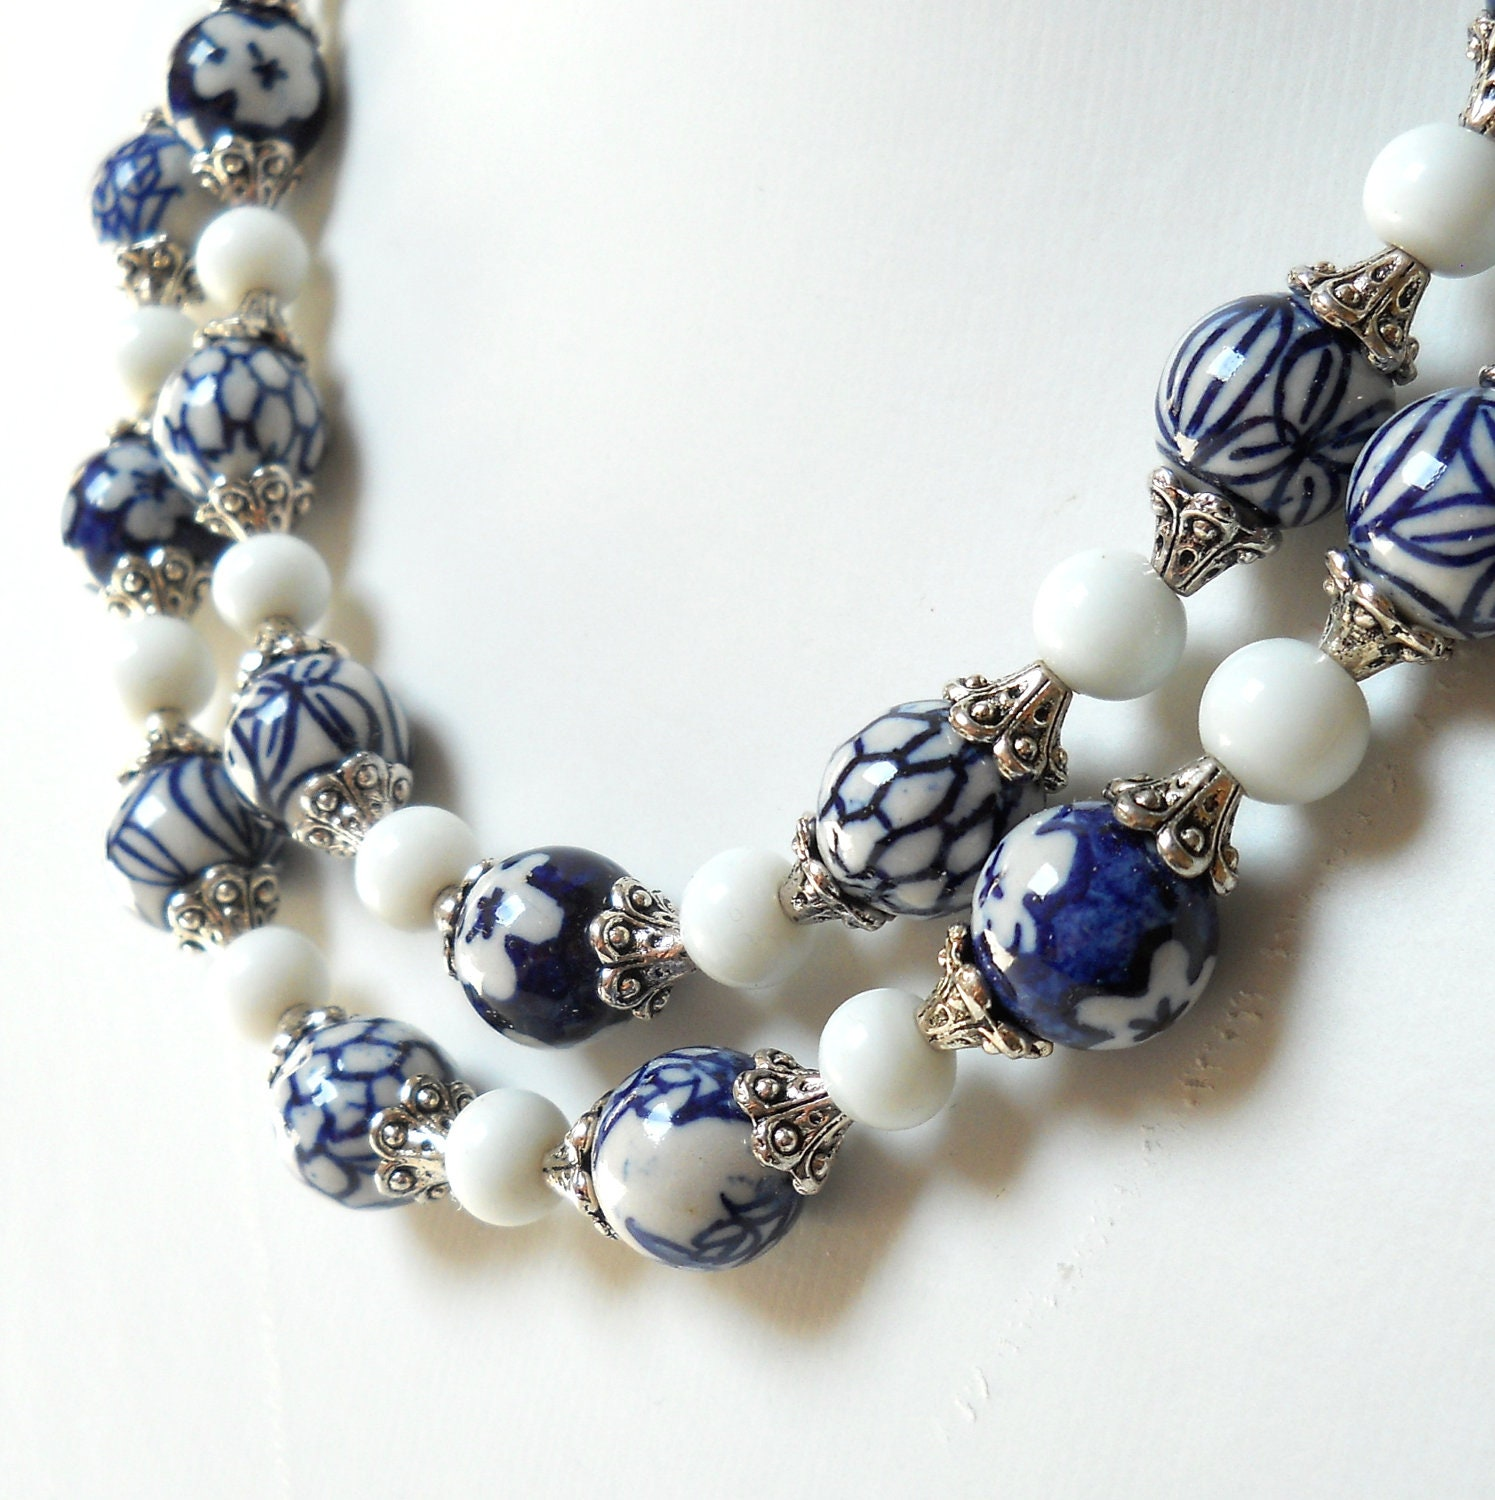 Delft Blue Necklace Blue And White Delft Blue Jewelry